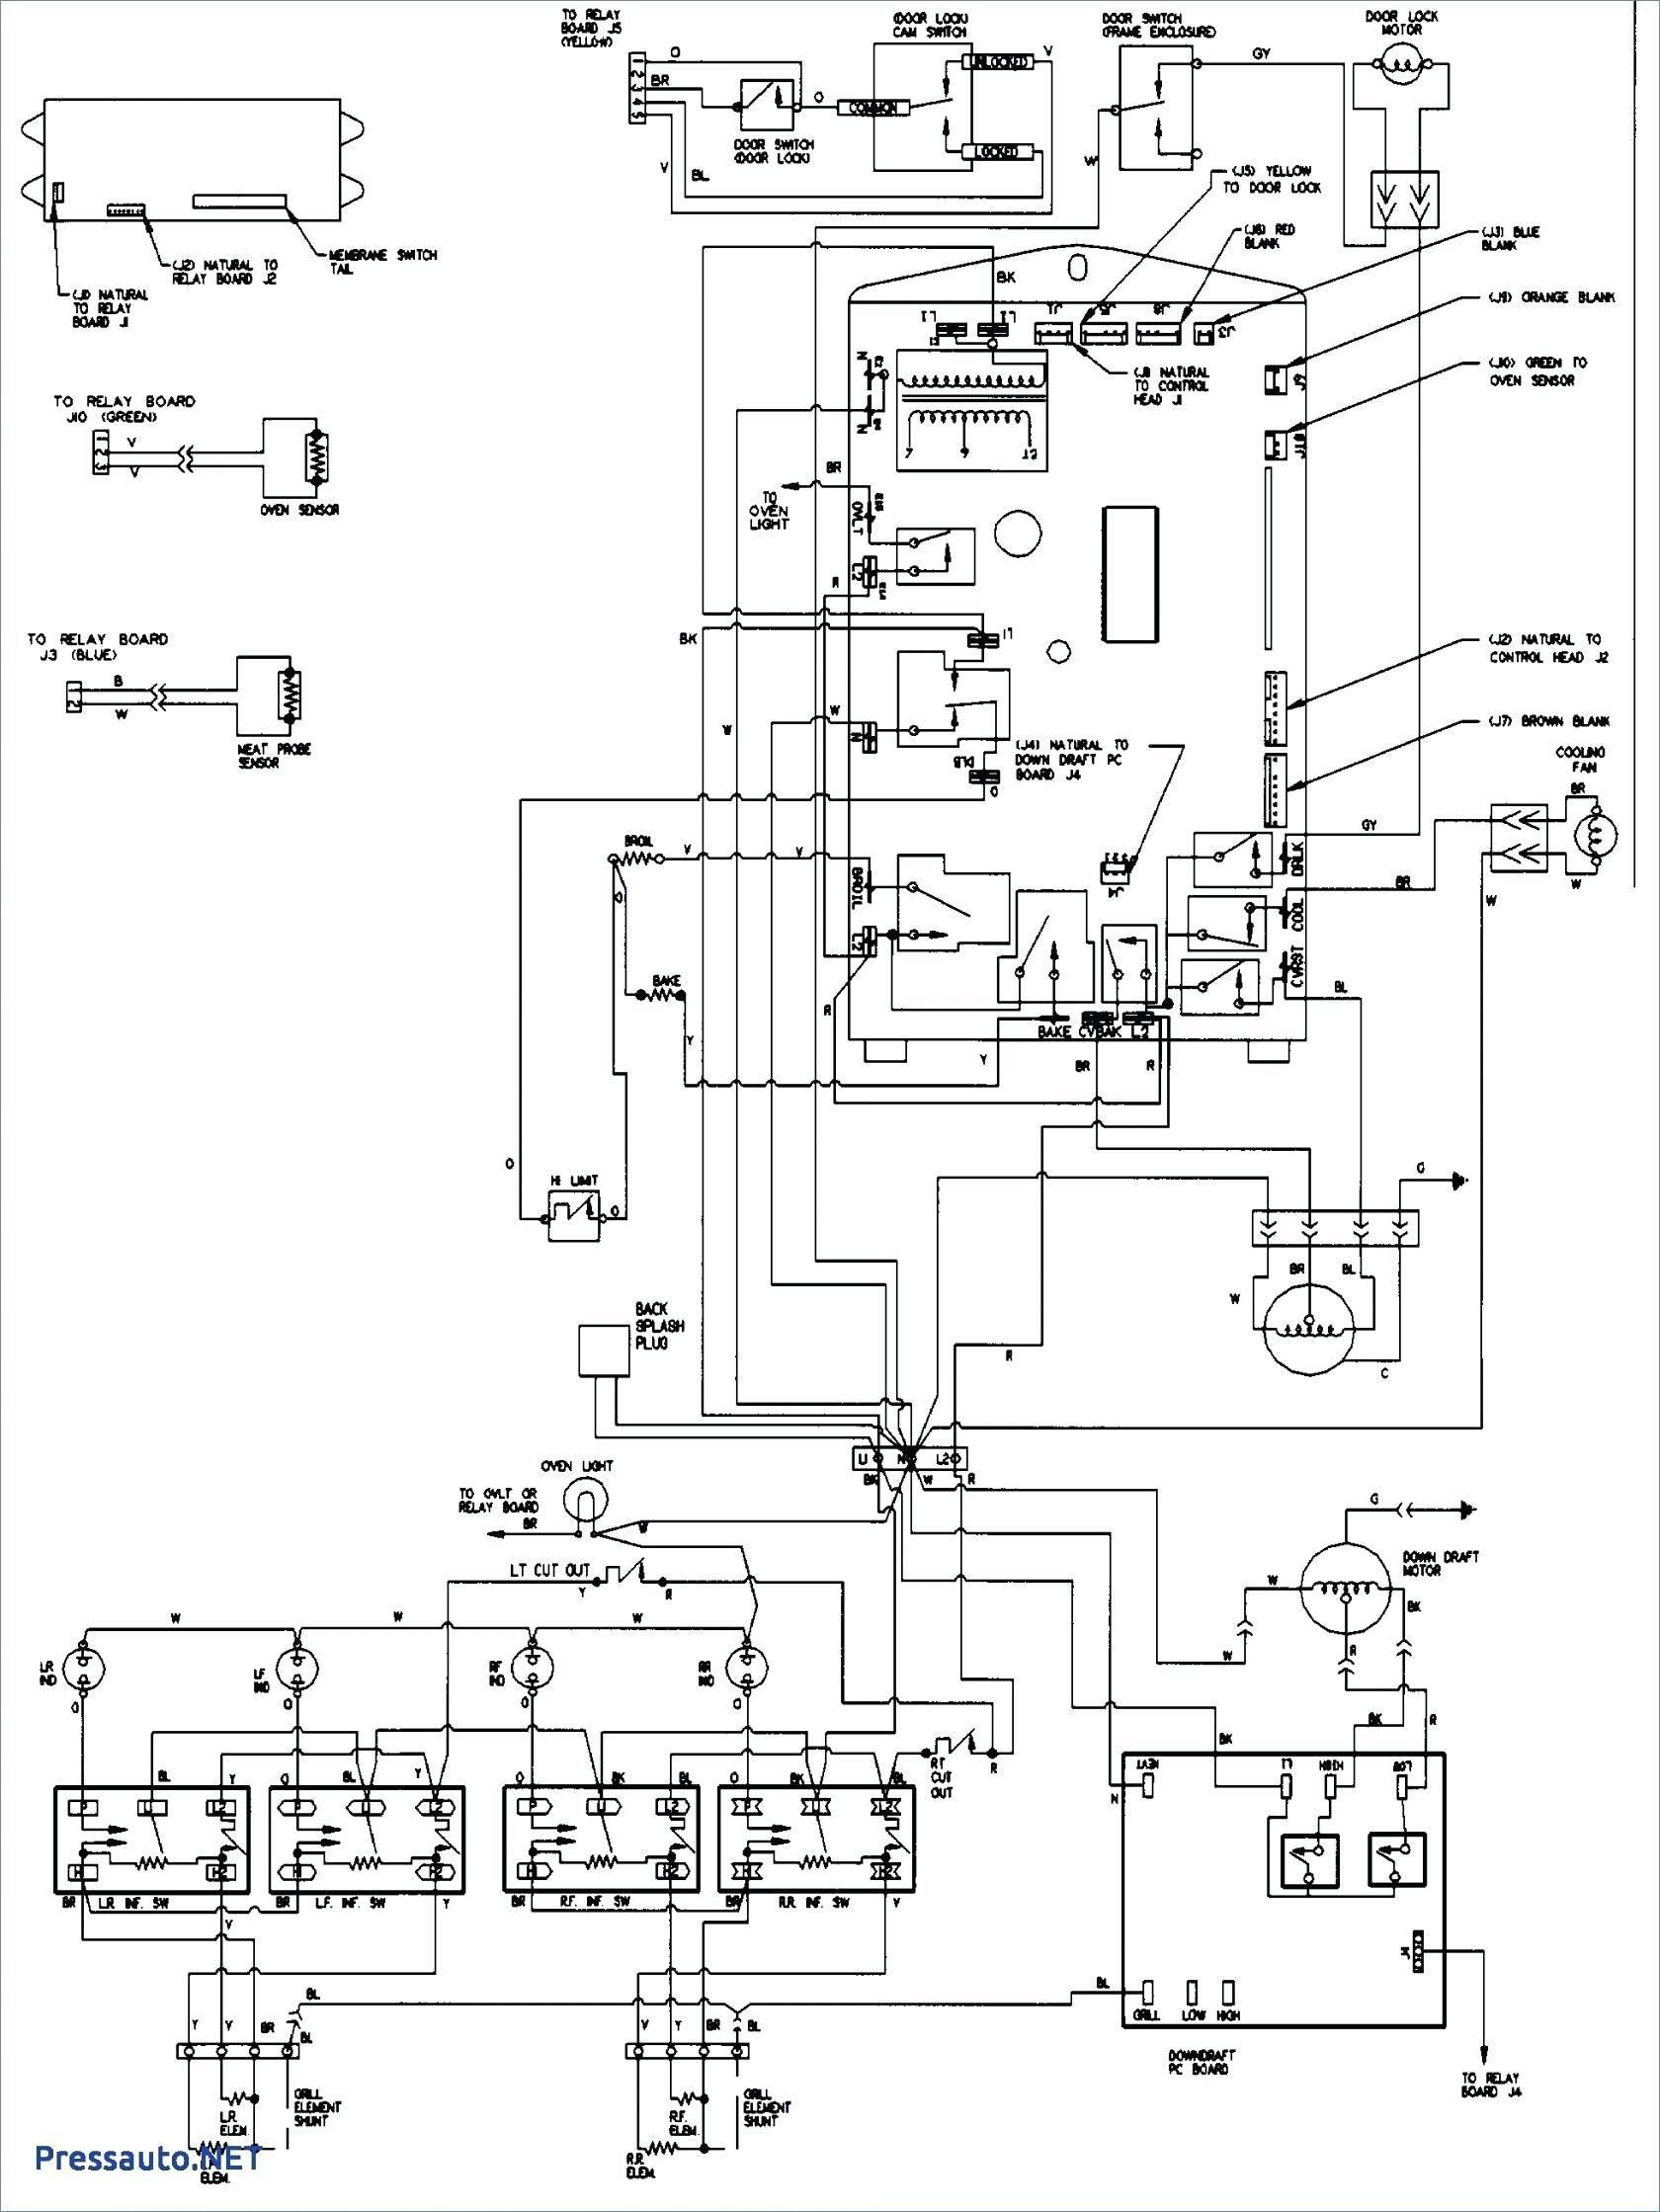 Lovely Wiring Diagram Gas Furnace diagrams digramssample